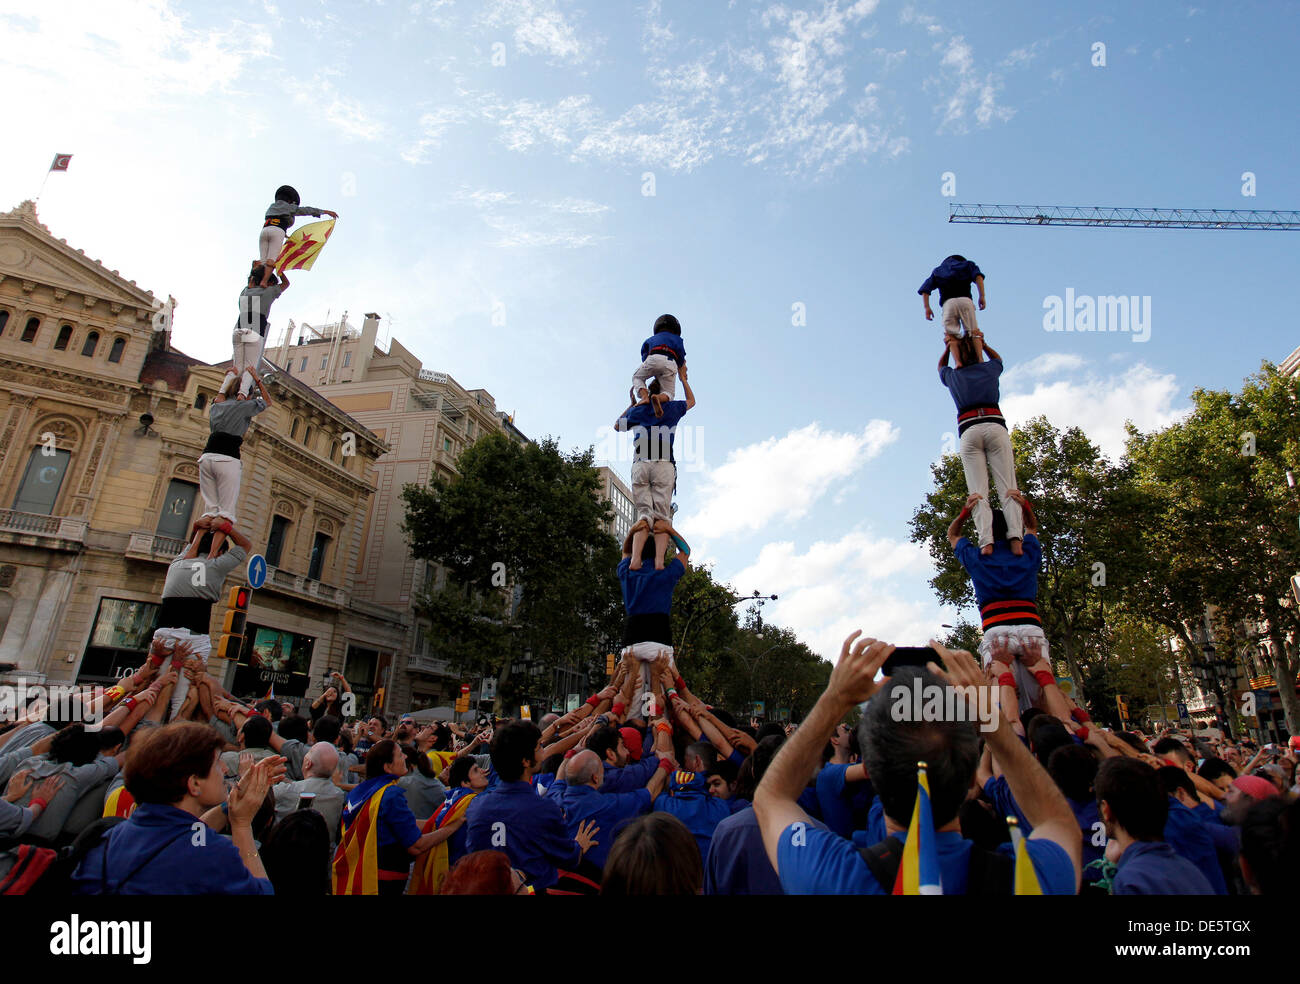 Barcelona, Spain. 11th September 2013. People form a human castle in Barcelona, Spain during The National Day of Catalonia on September 11, 2013 in Barcelona, Spain. The Spanish region of Catalonia has been celebrating its national day known as La Diada amid demonstrations and renewed calls for independence. In an attempt to muster support for secession hundreds of thousands of people have formed a 400km long human chain across the region to press for a vote on independence from Spain. © dpa picture alliance/Alamy Live News - Stock Image